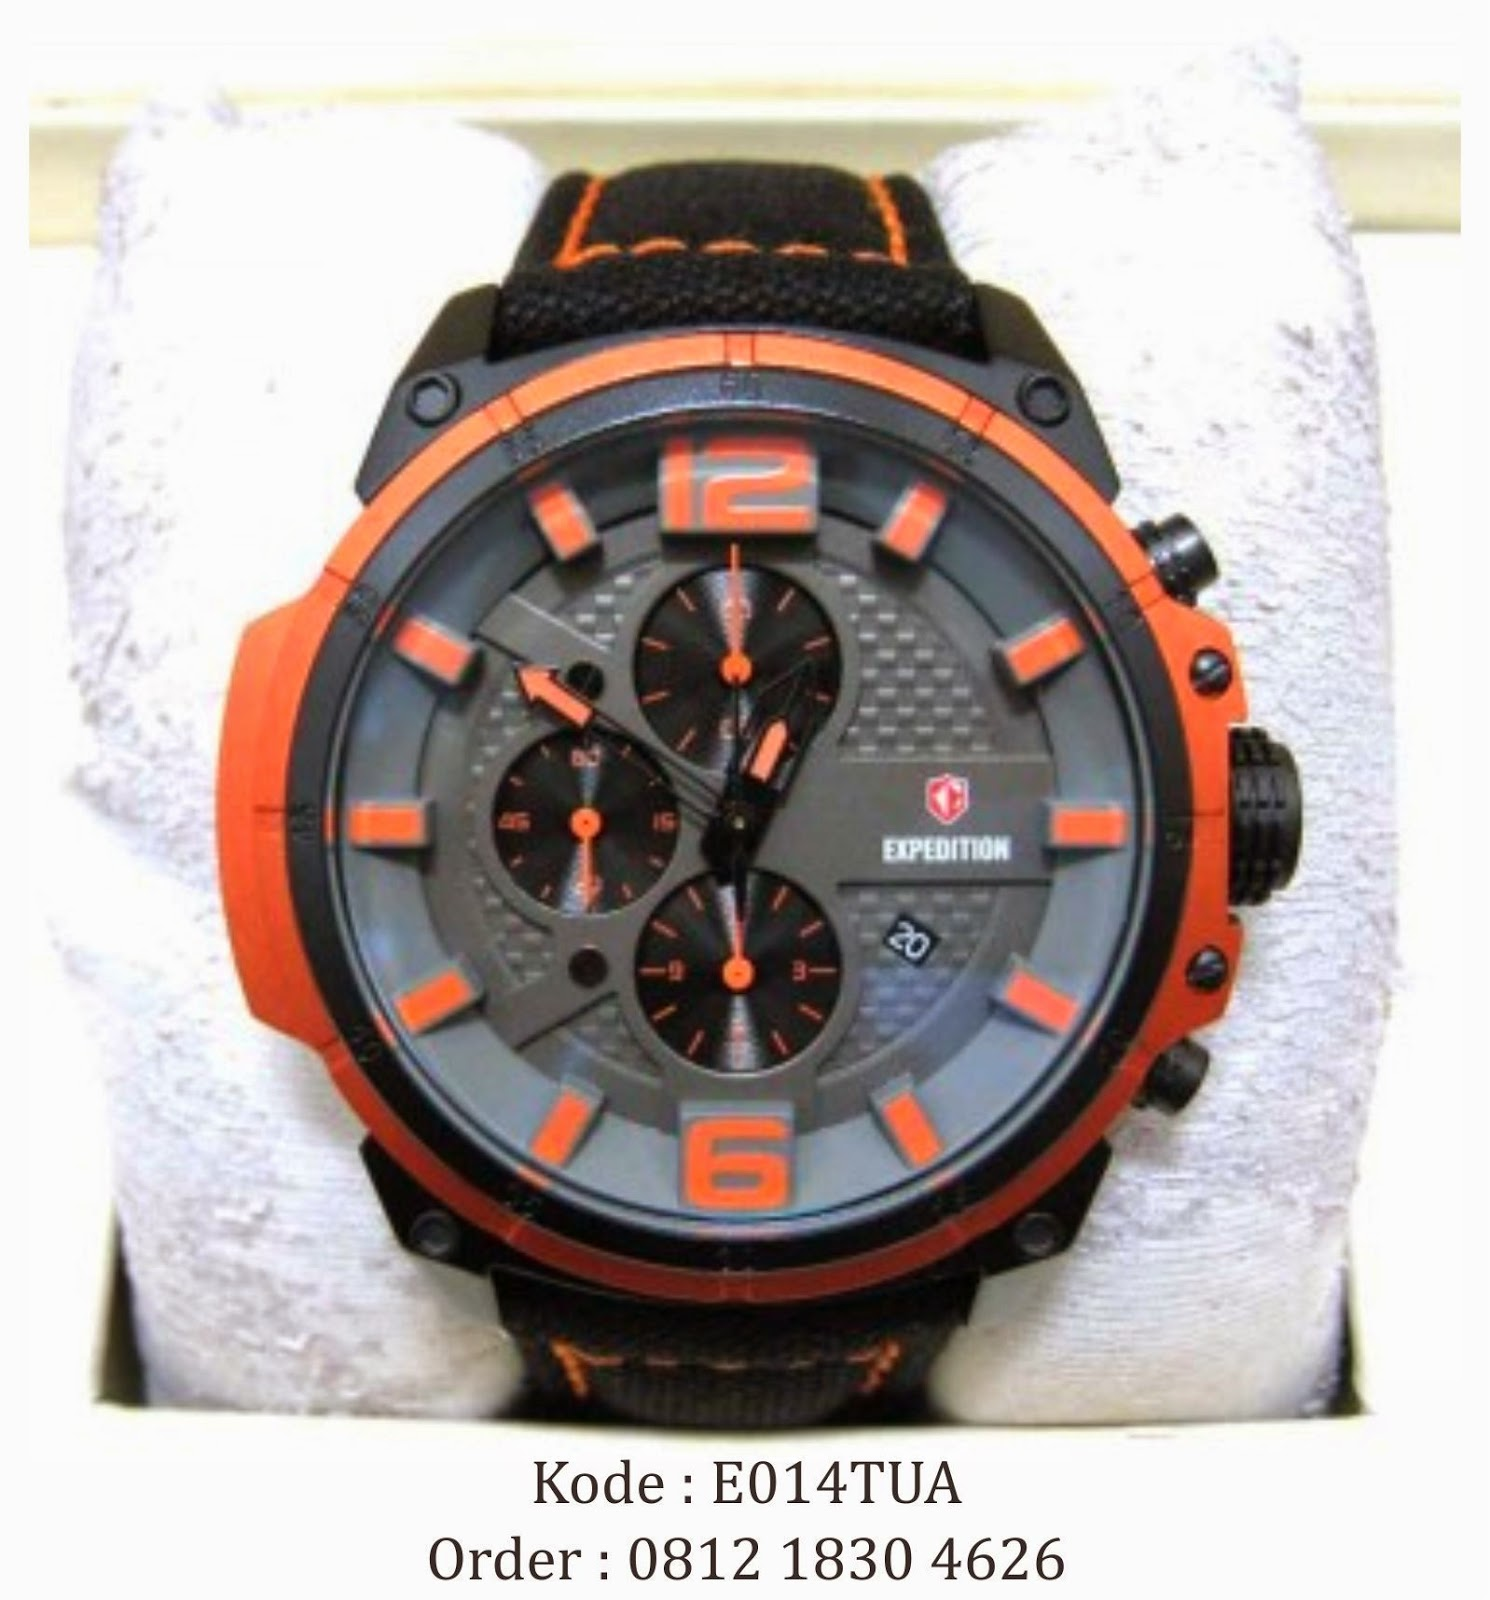 0812 1830 4626 | Jual Jam Tangan Expedition 6622 Orange